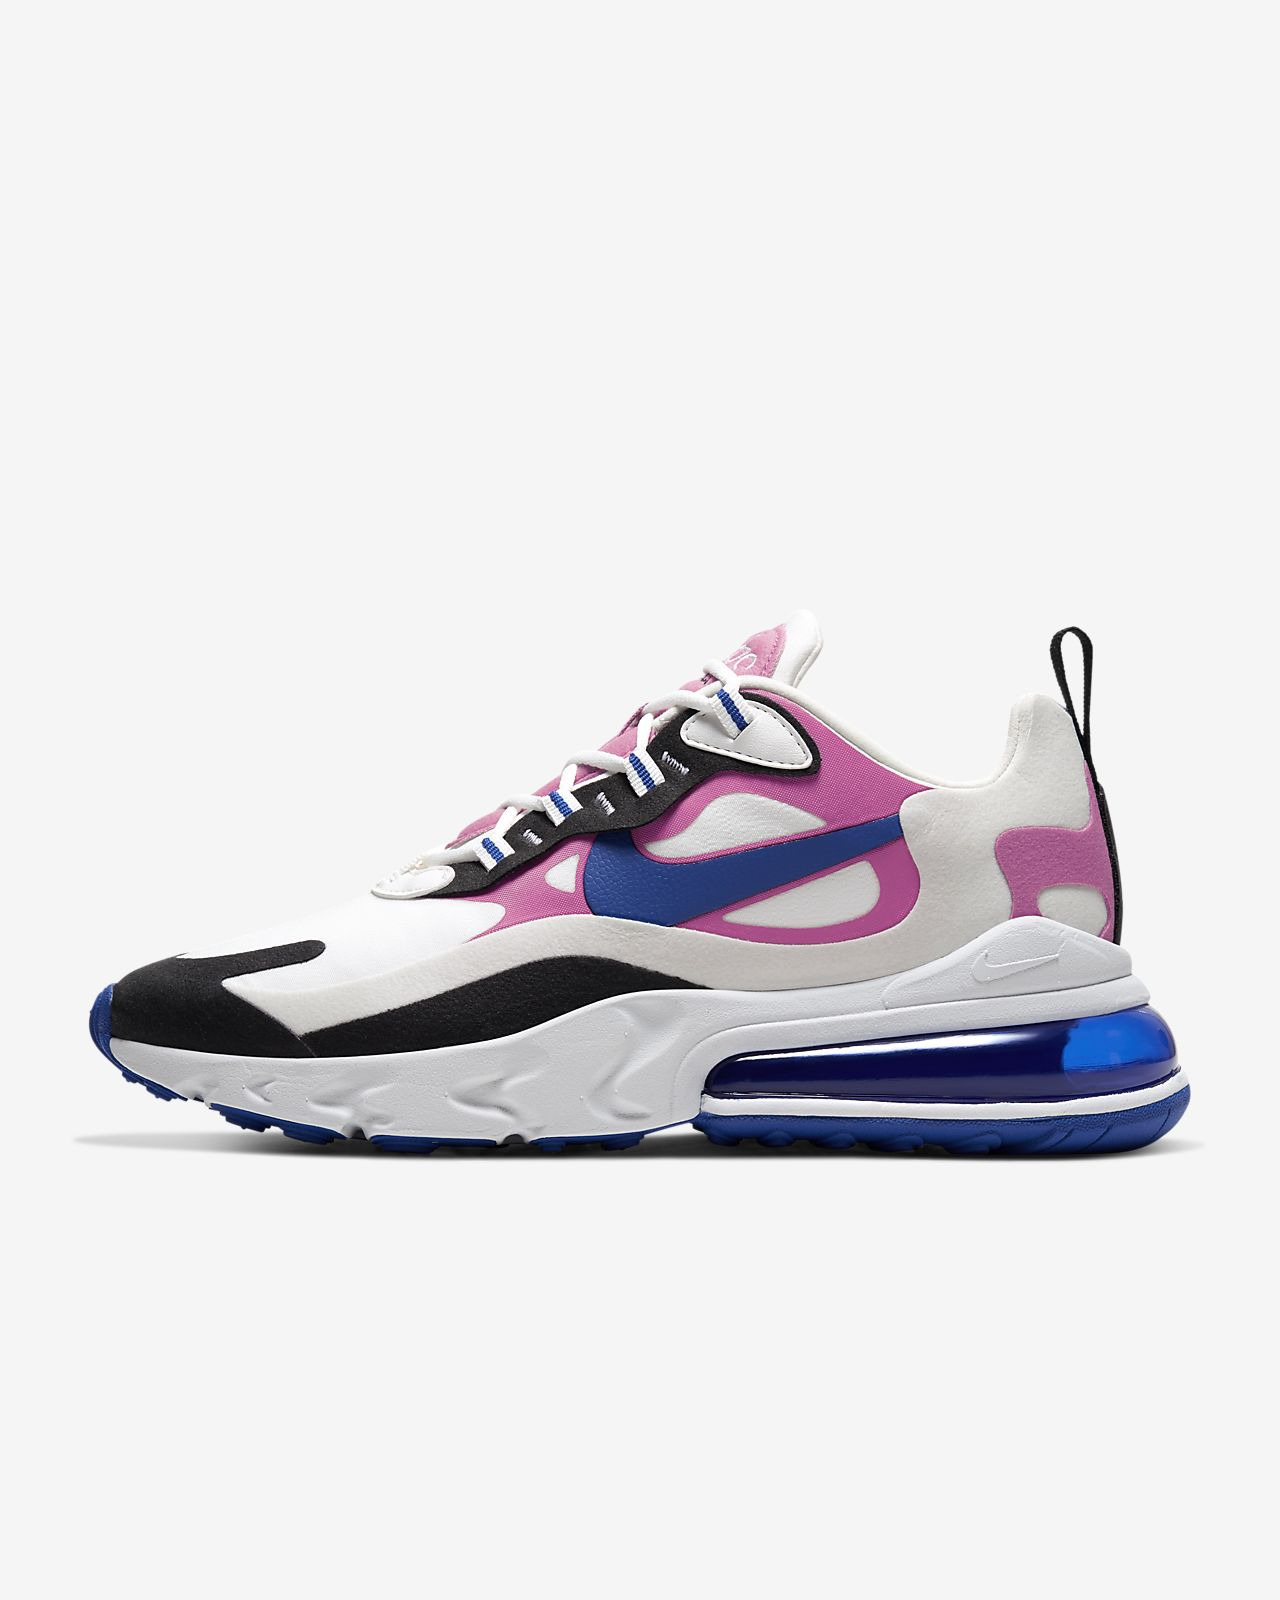 nike air max 270 react pink and white